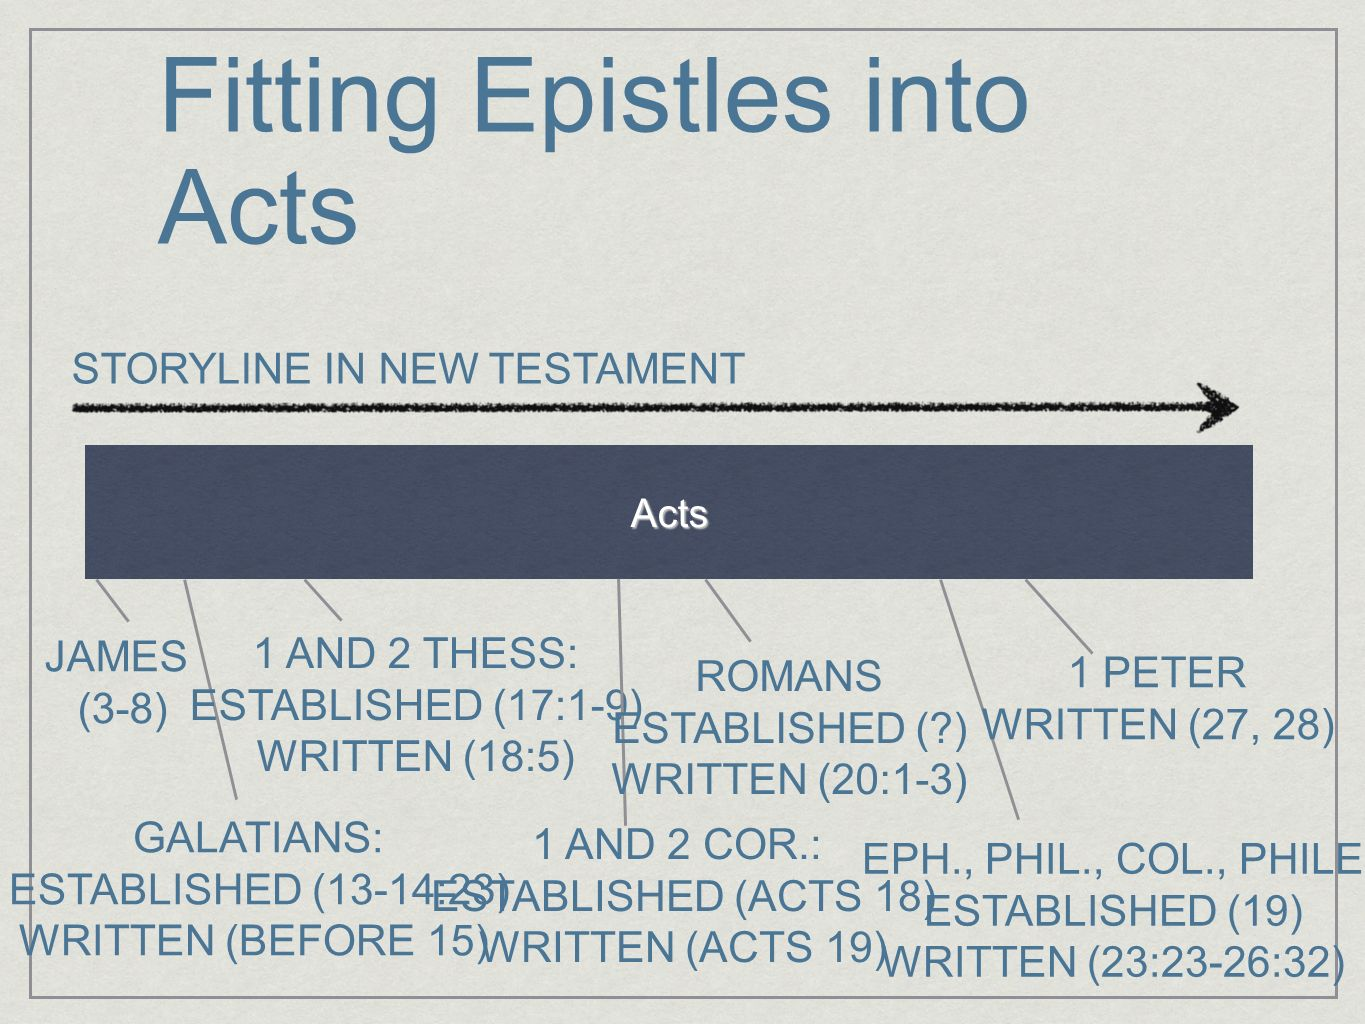 Fitting Epistles into Acts